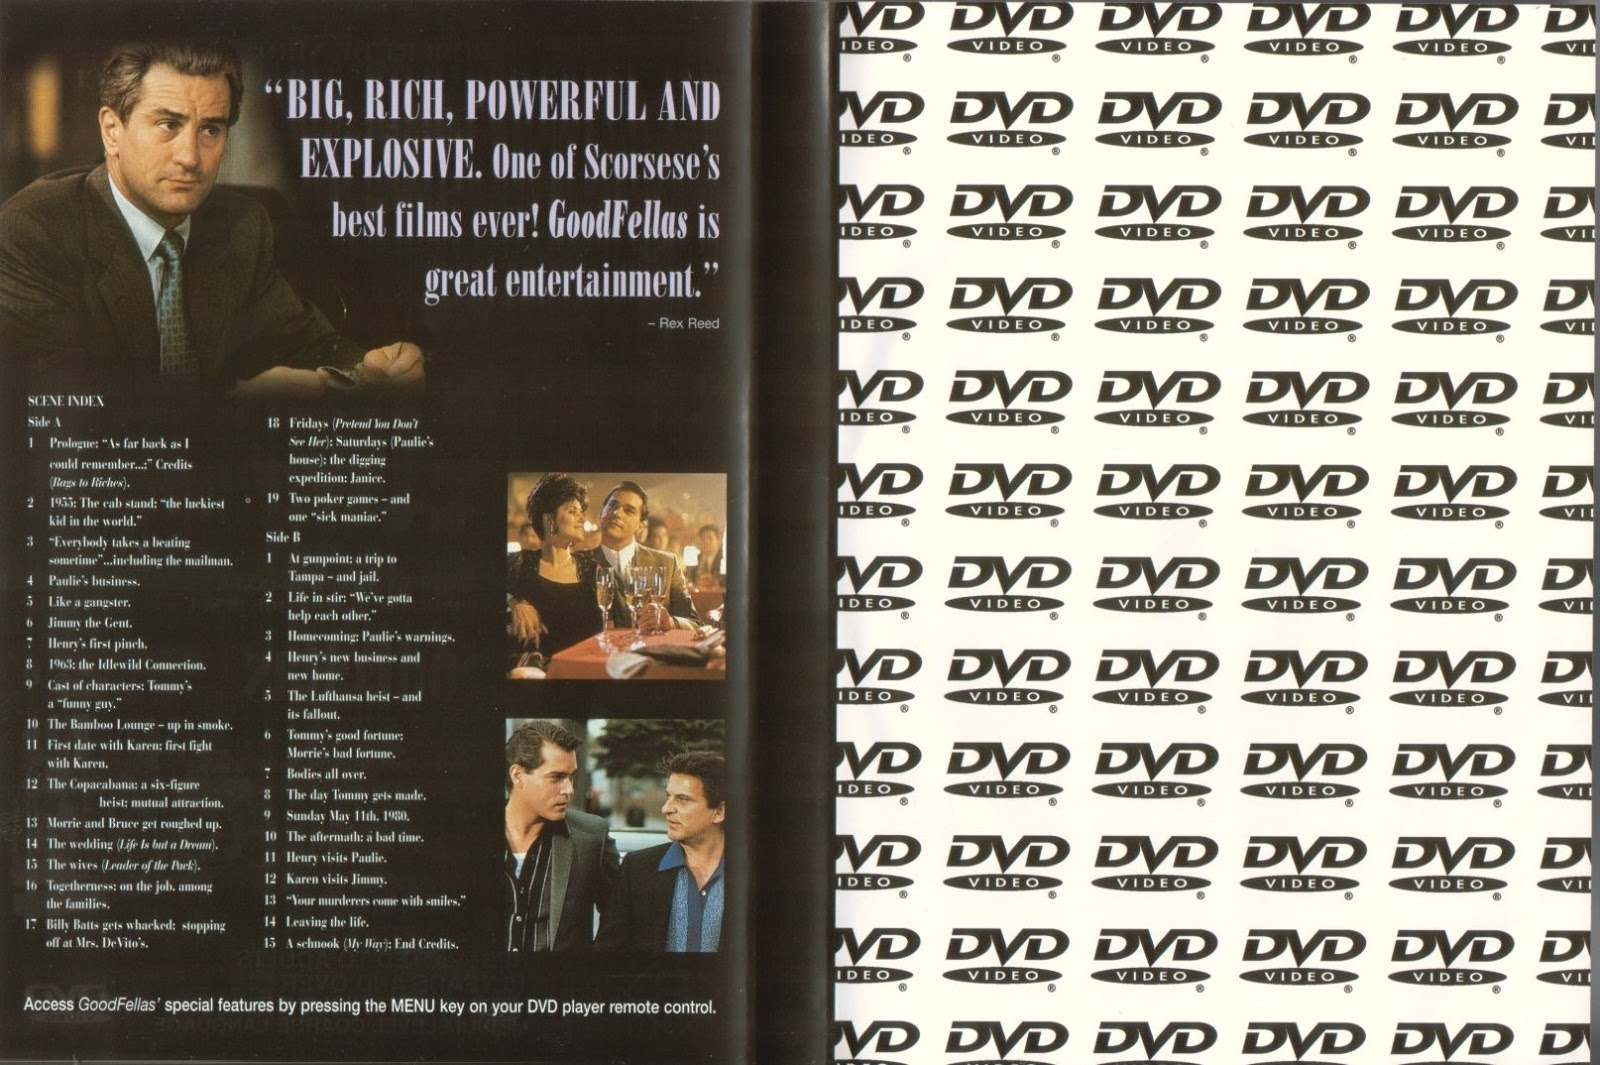 goodfellas-inlay-dvd-back-cover